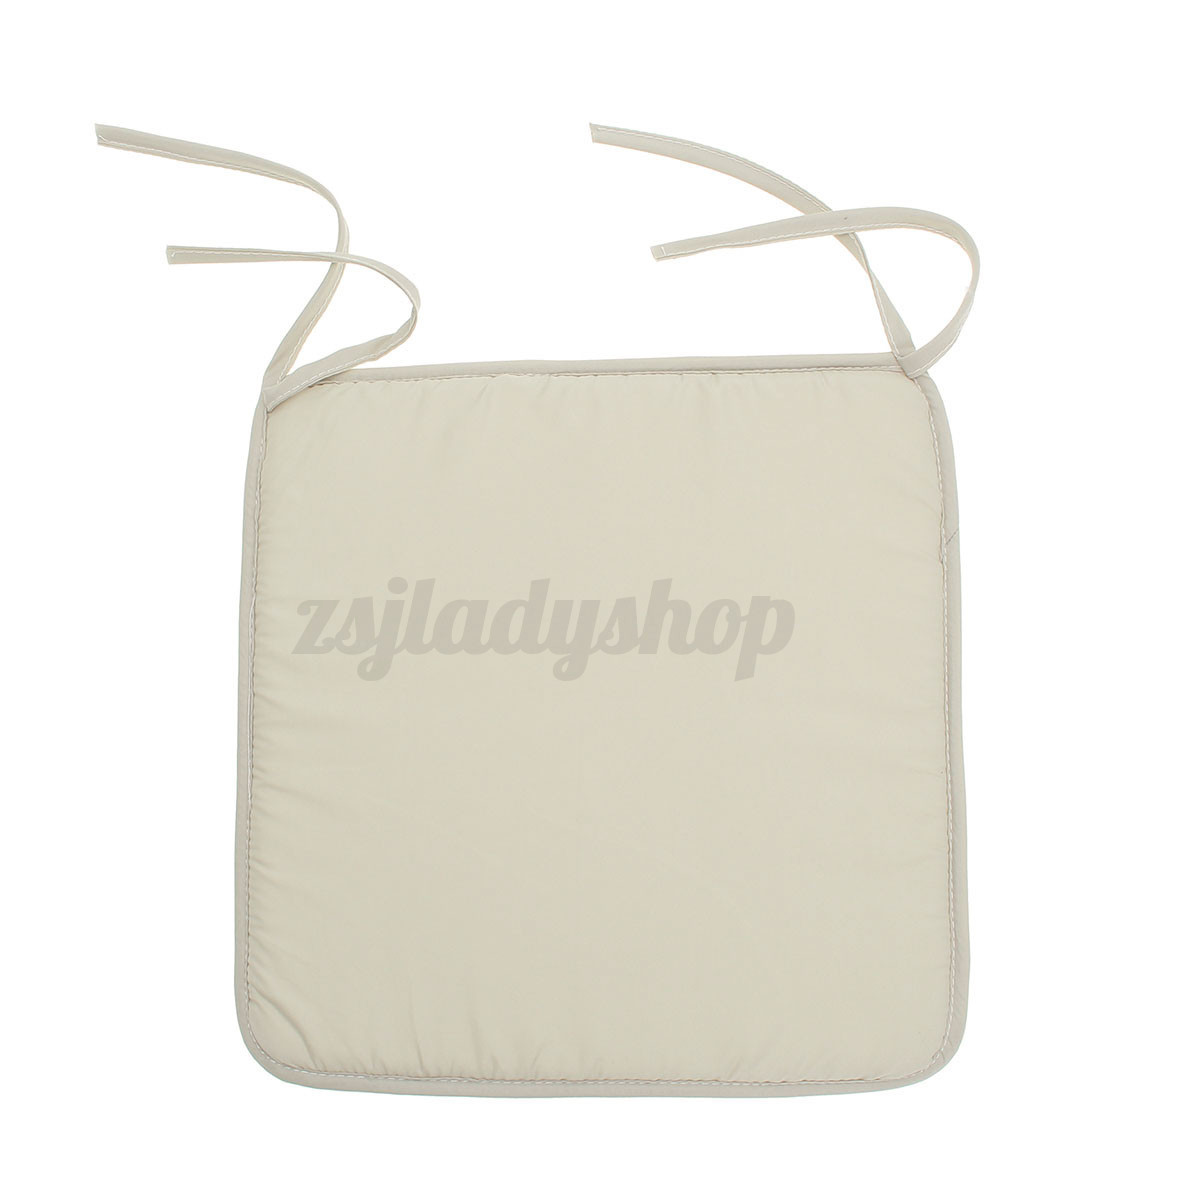 Soft Chair Cushion Seat Pads Removable Cover Dining Home  : 79D7A737A6C69E9B976D8C86F68F9273CA268F039A9C9A93D21656BE539DD203832603D218CECE9B83D2C7C89BB473CA93369A239ECAA613A013CC from www.ebay.com.au size 1200 x 1200 jpeg 78kB